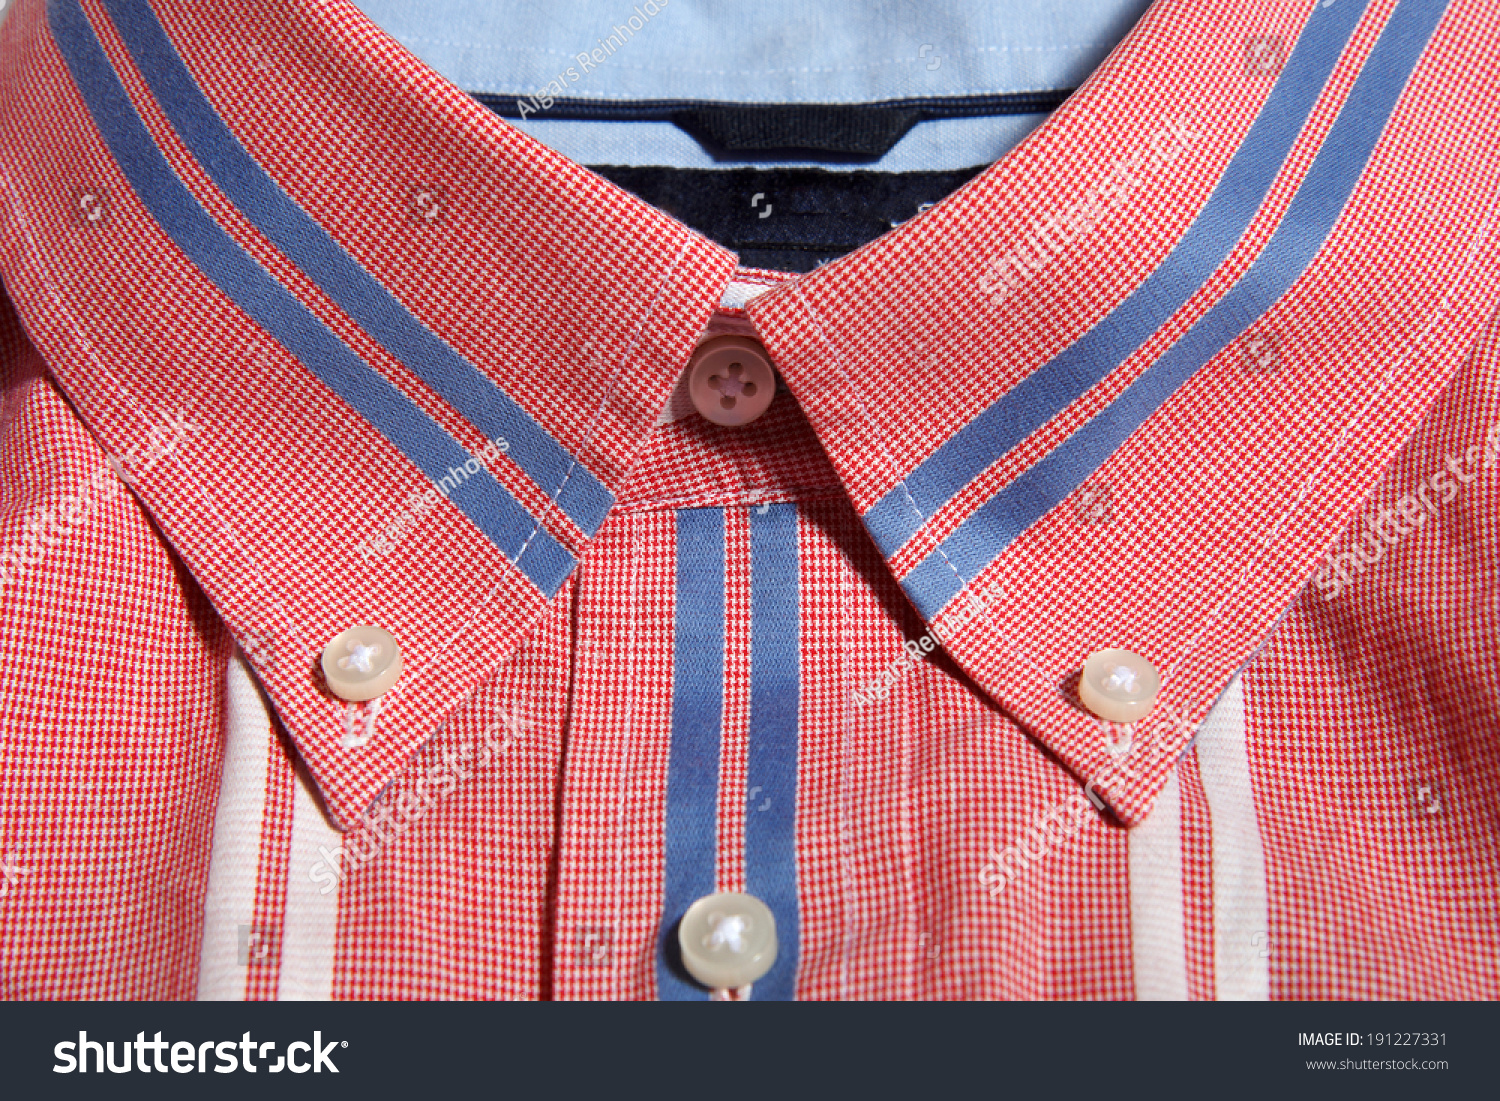 Red man shirt button down collar with blue and white for Red and white button down shirt